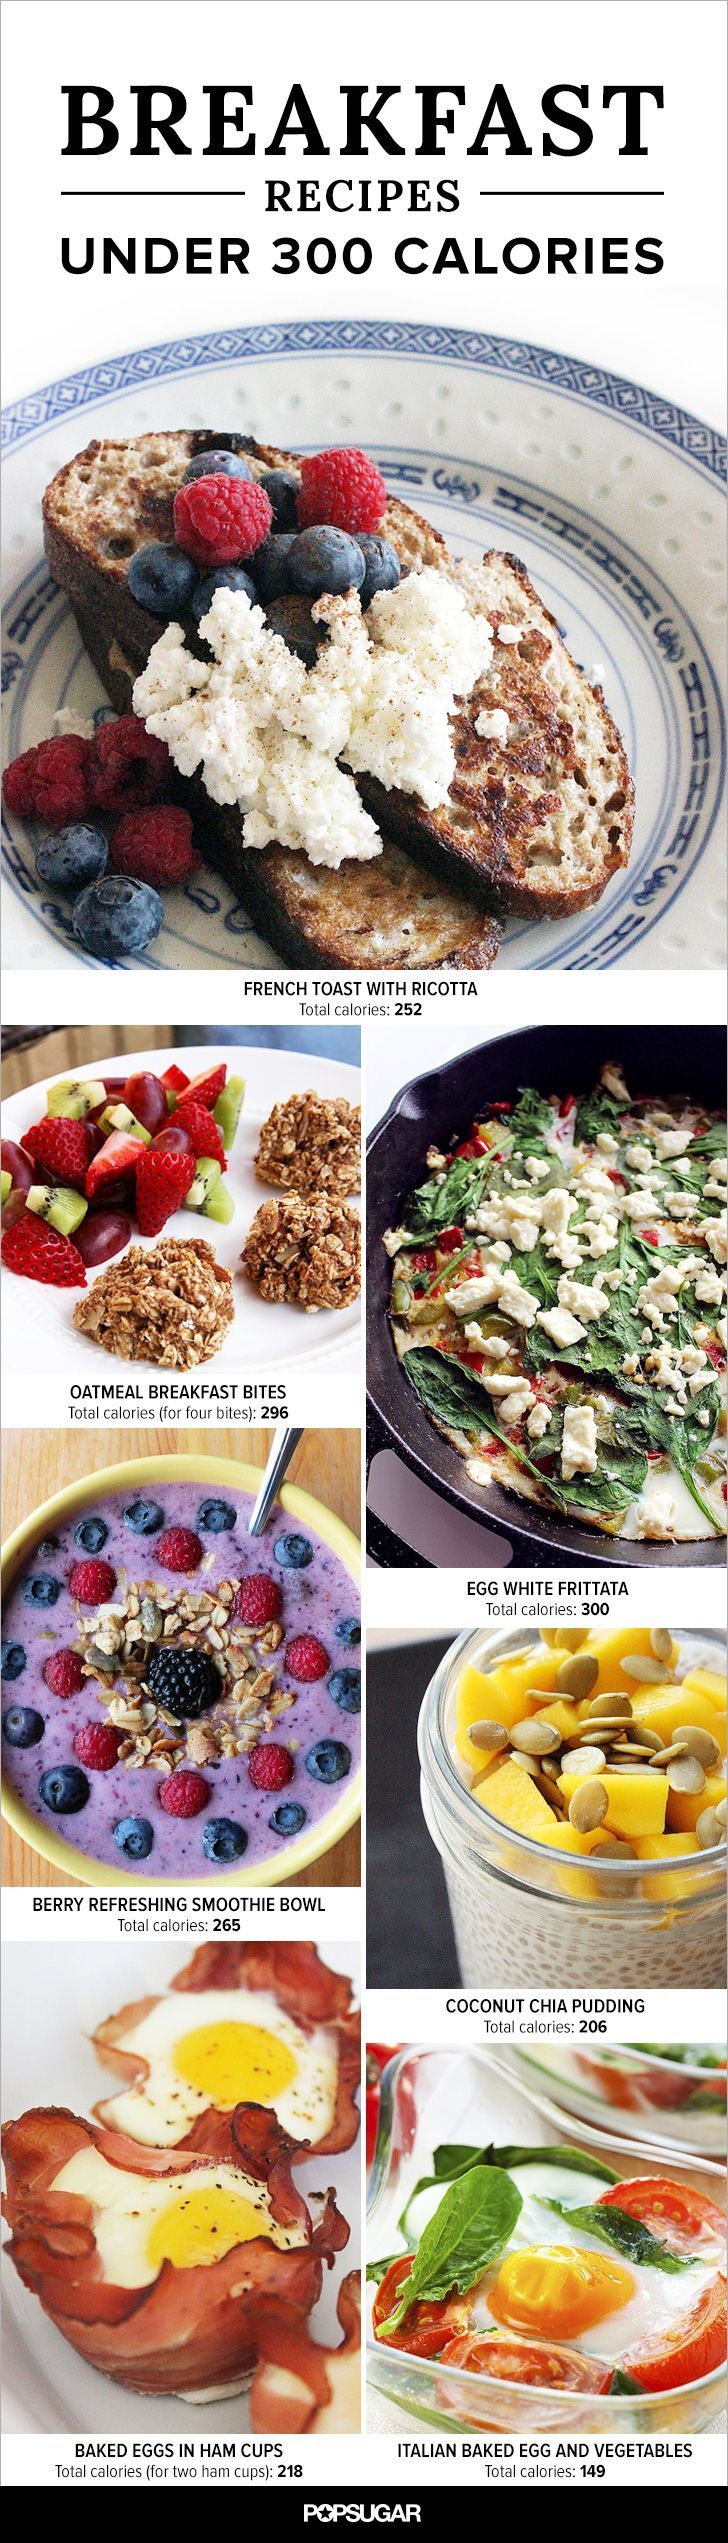 Healthy and filling breakfast recipes that are under 300 calories each.